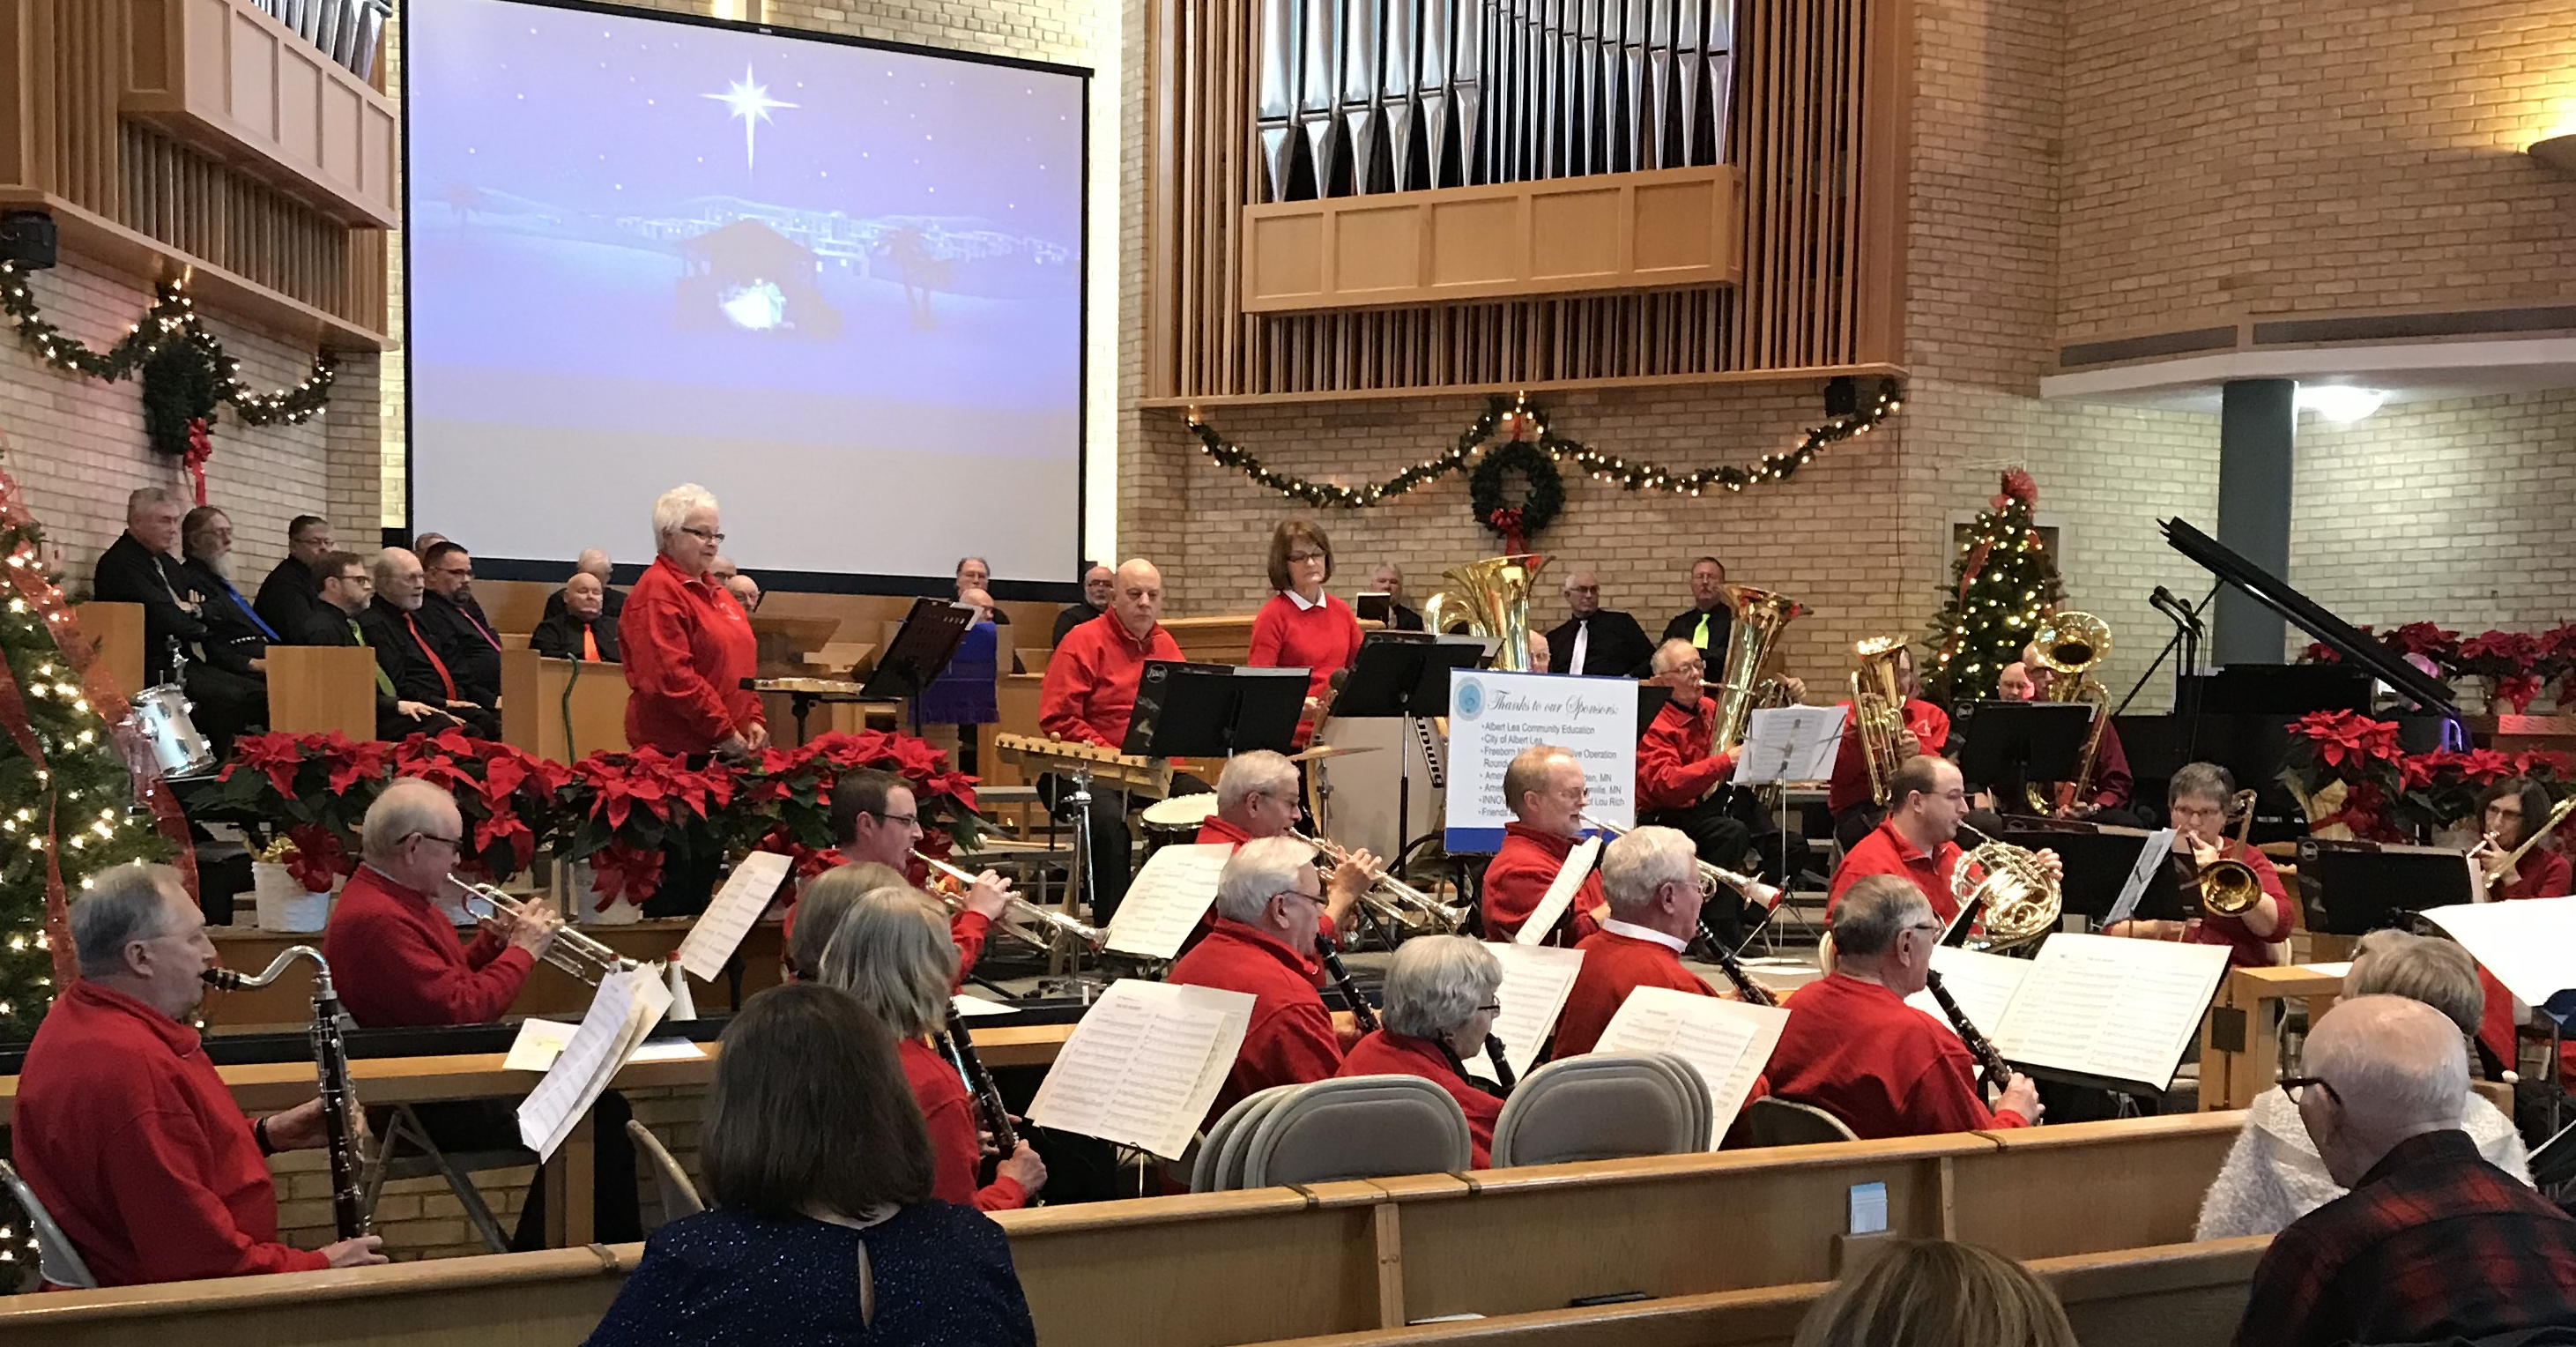 Band and Men's chorus Dec 17